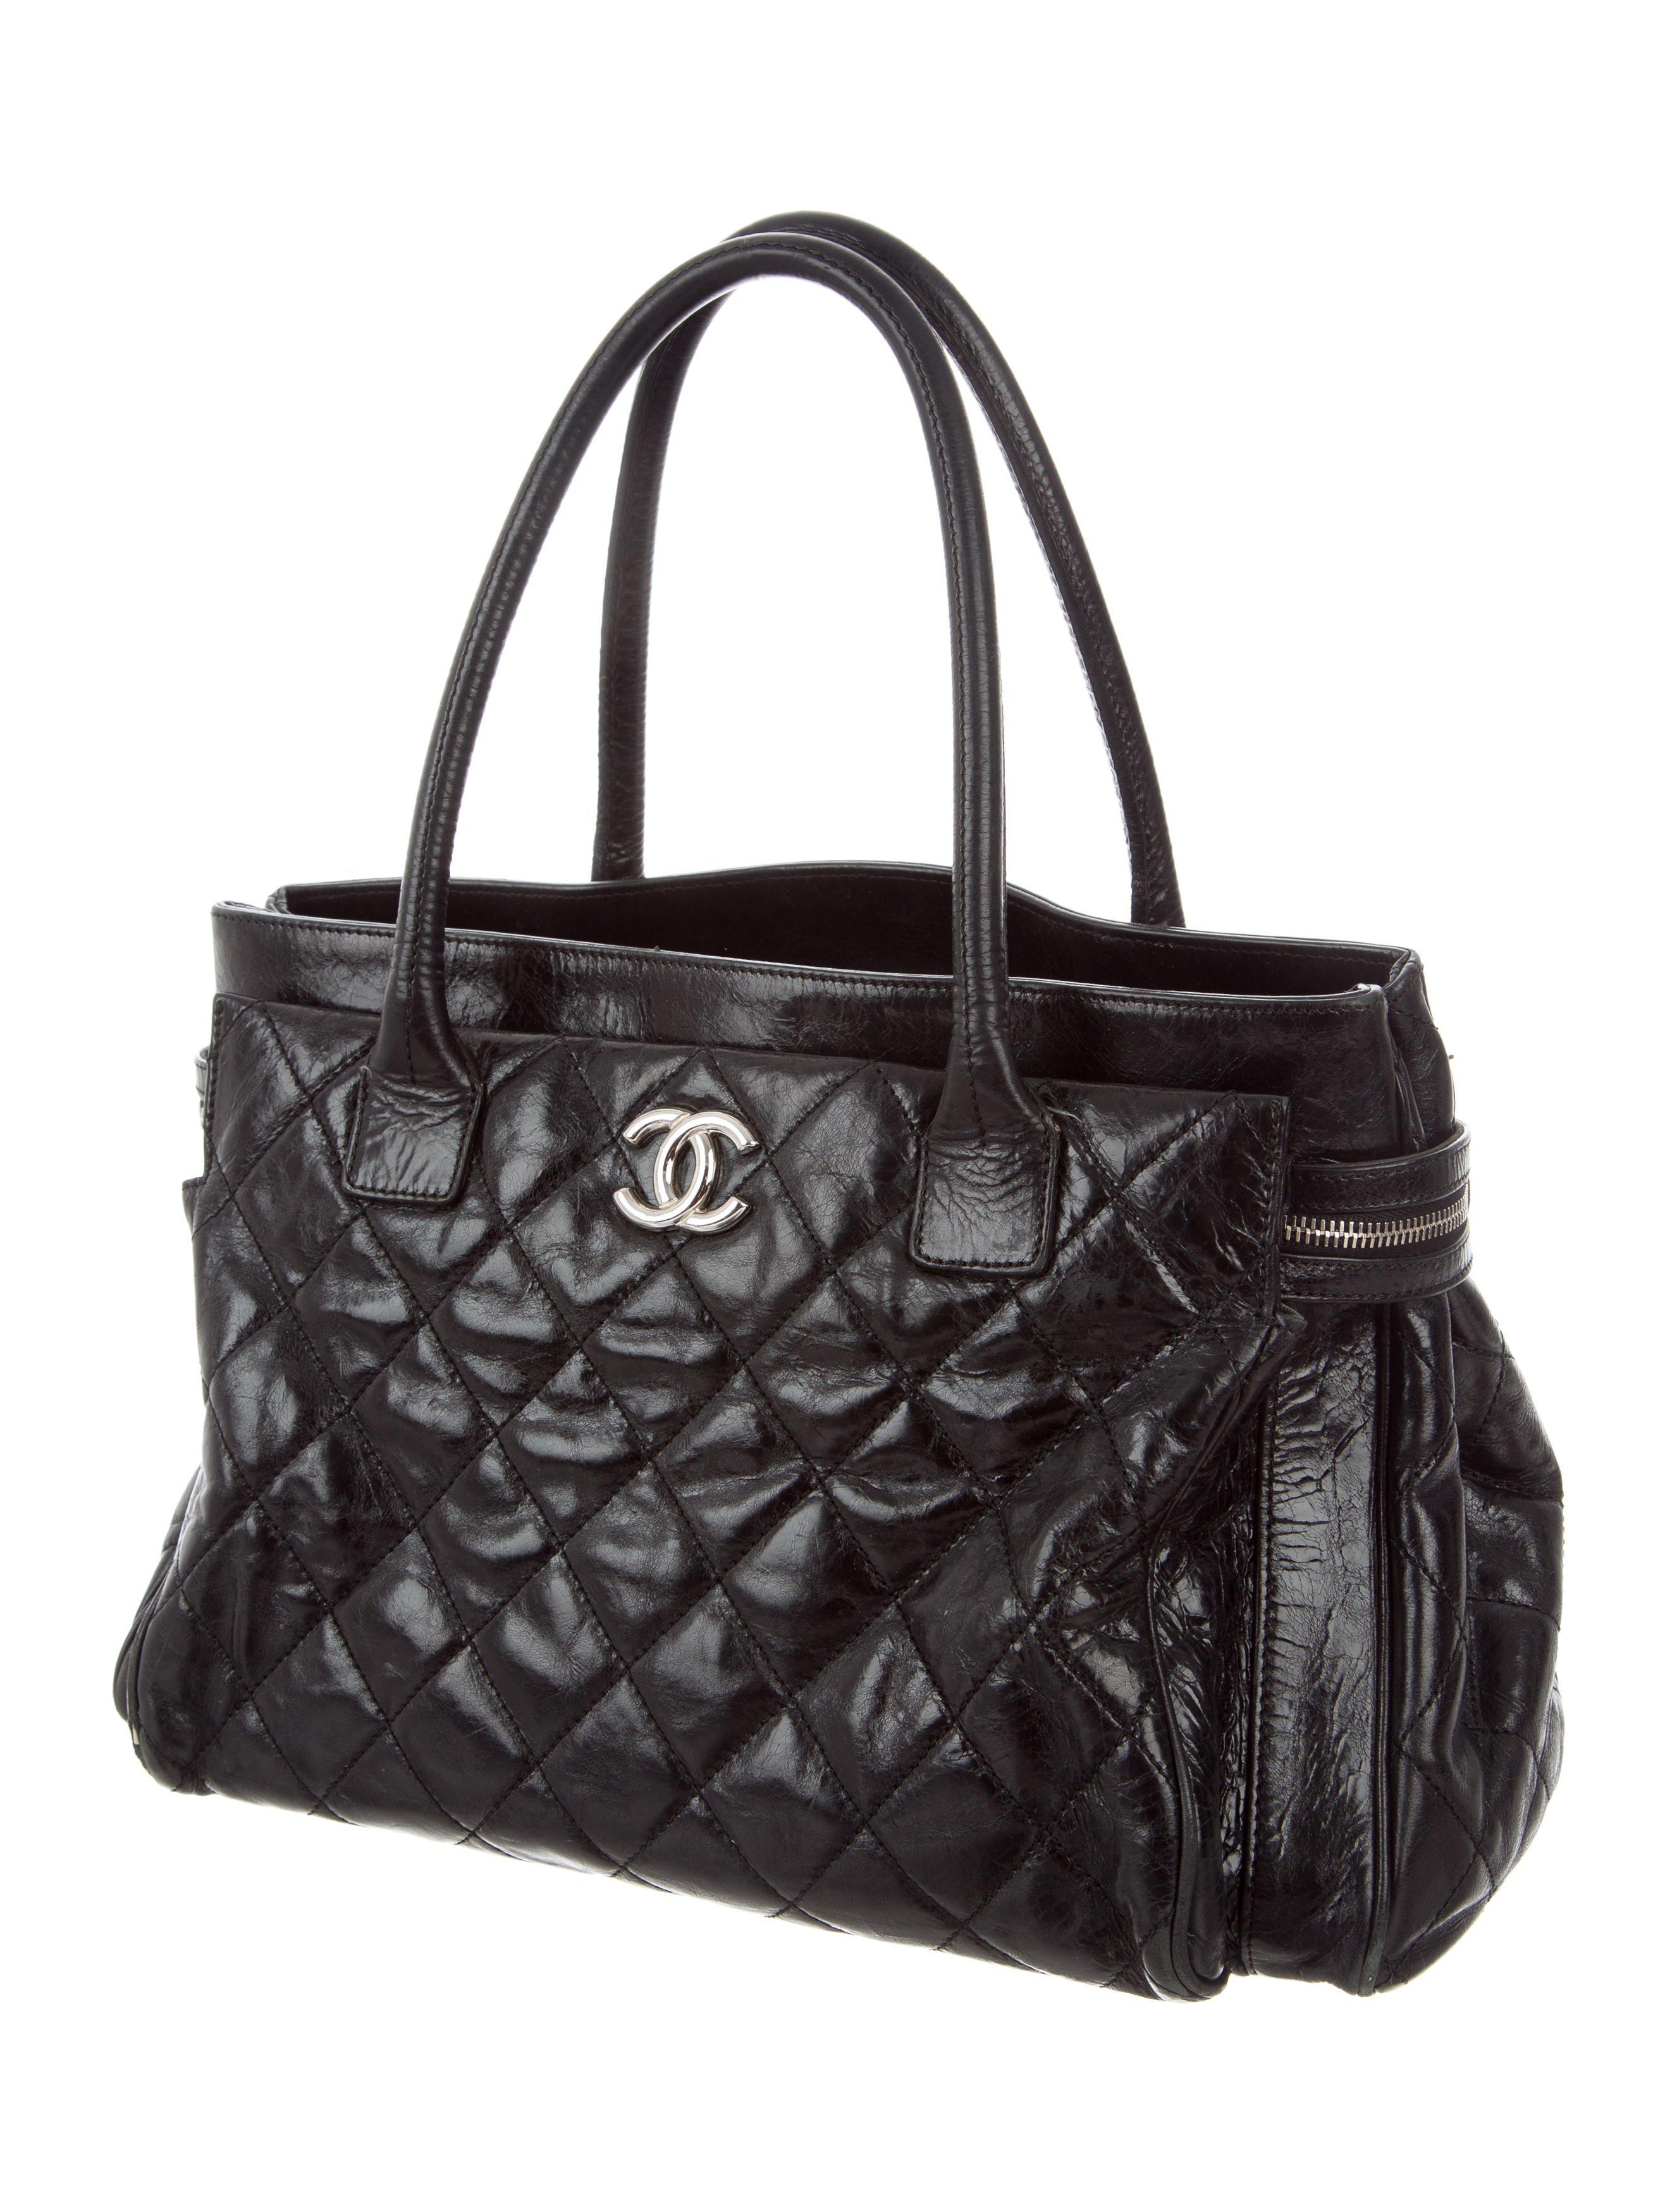 92b115c18bff Lyst - Chanel Glazed Calfskin New Portobello Tote Black in Metallic